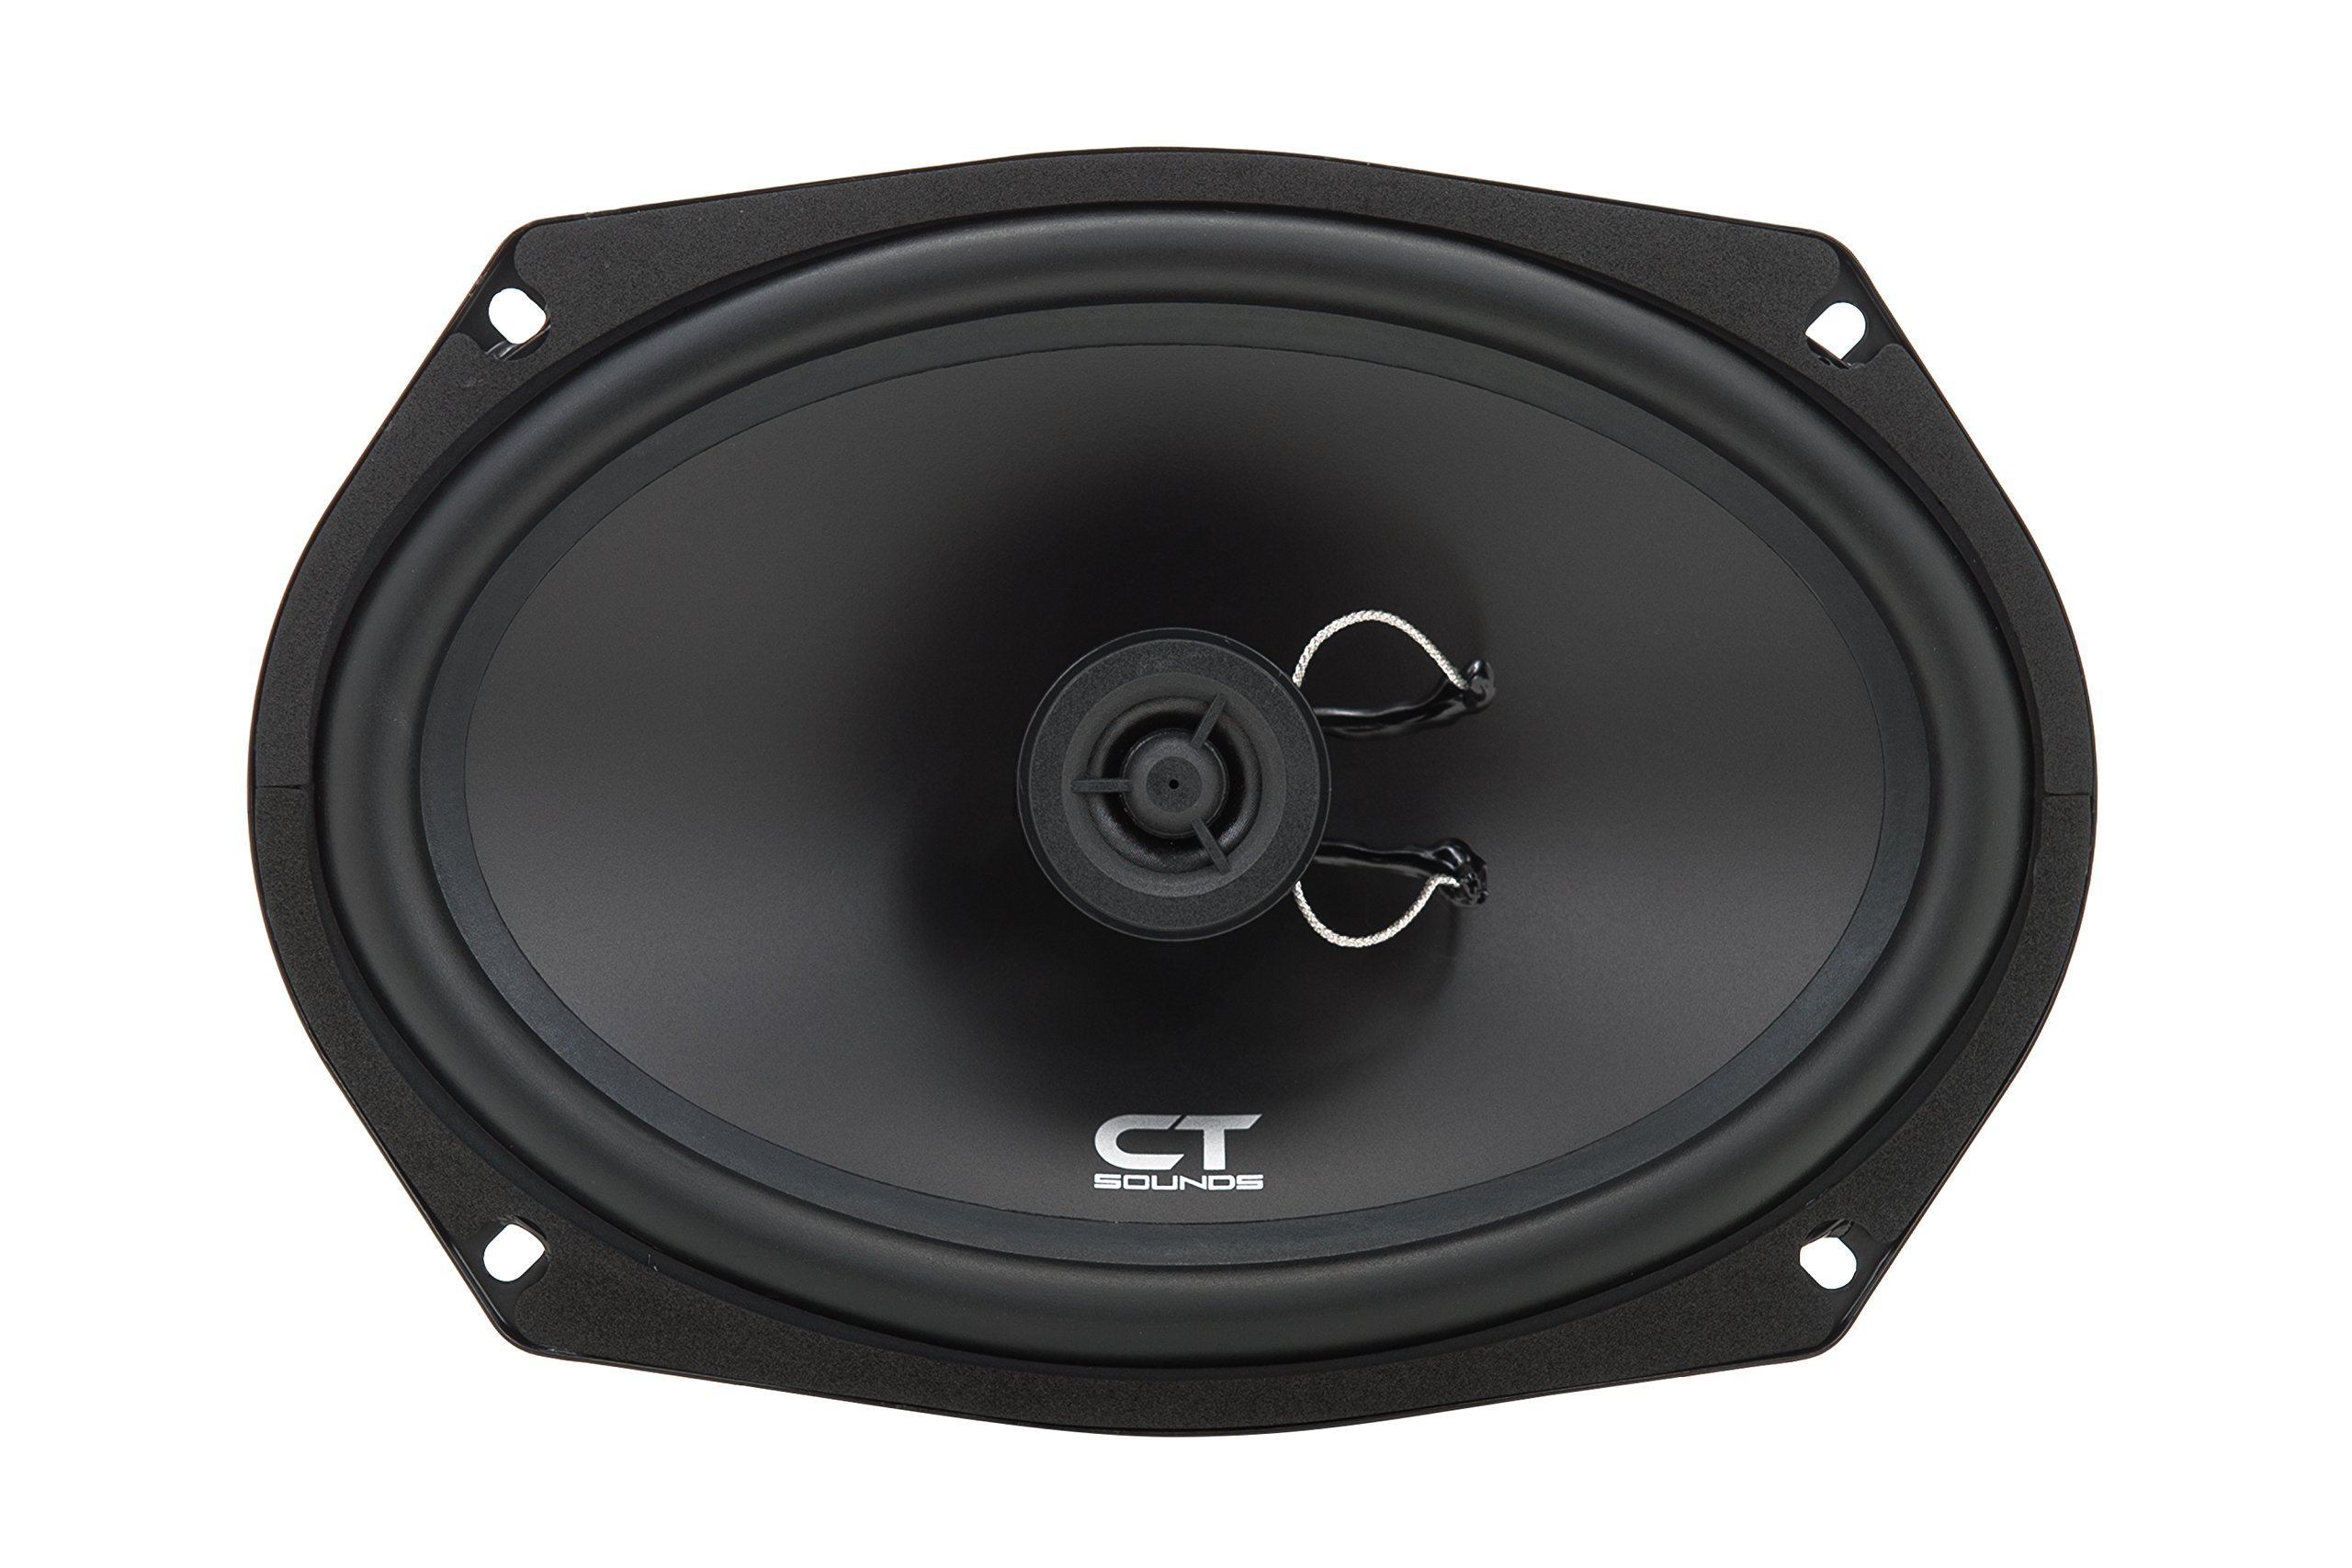 CT Sounds Bio 6x9 Inch 2 Way Silk Dome Coaxial Car Speakers (Pair) by CT Sounds (Image #7)